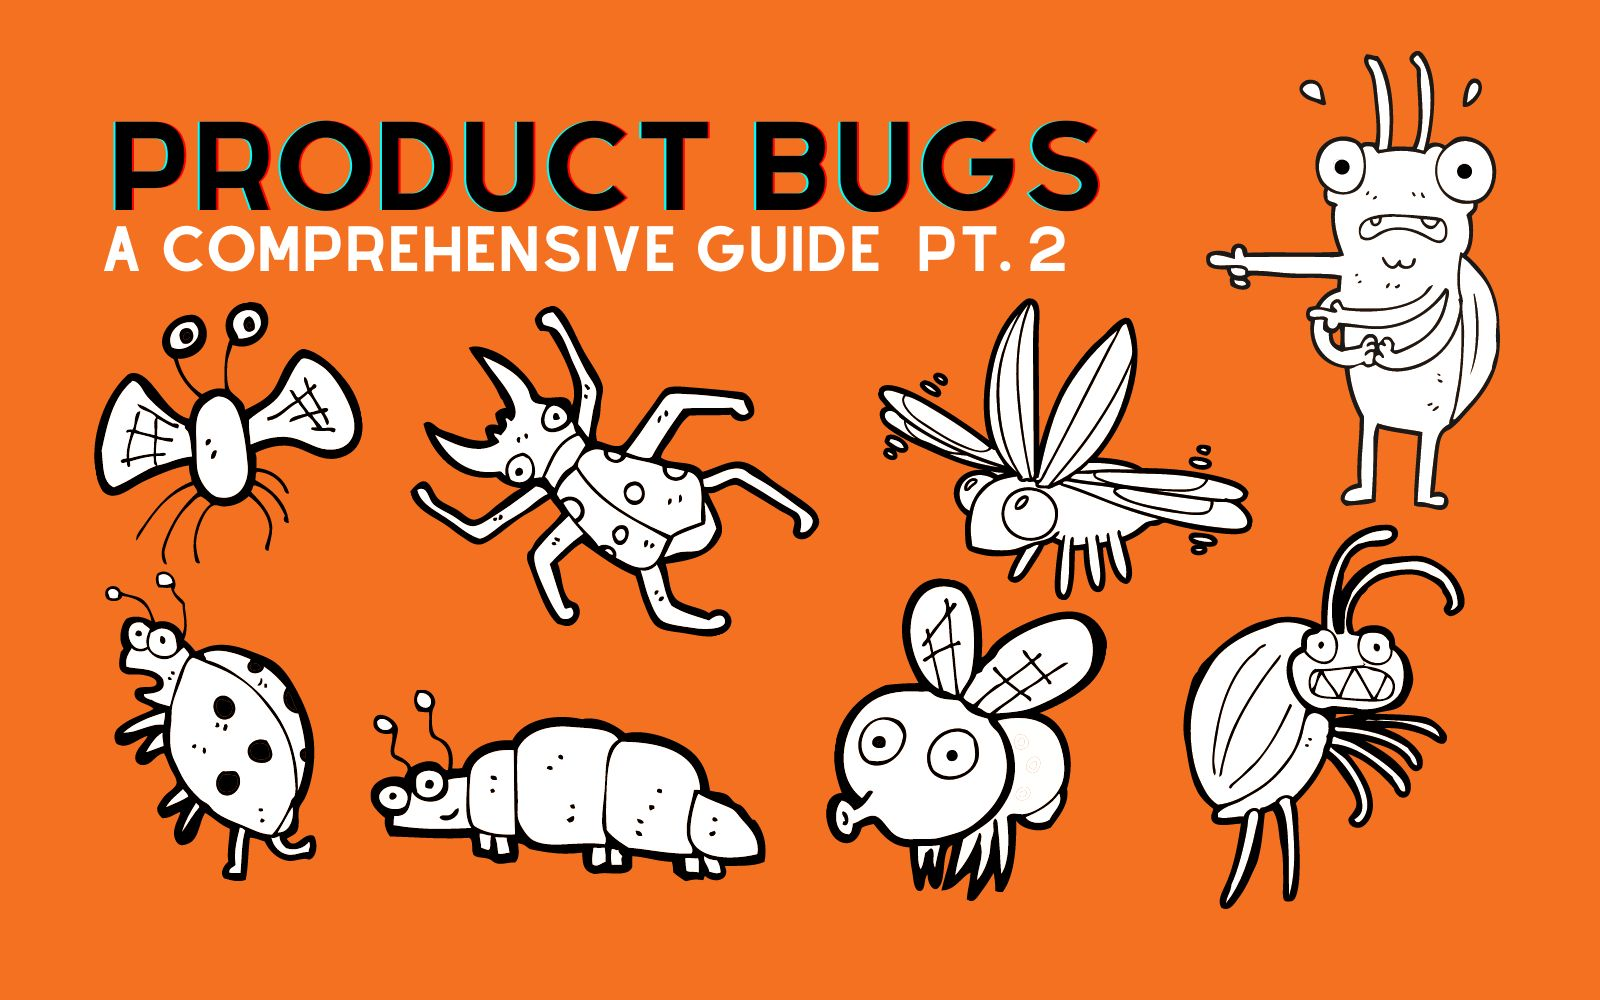 /the-ultimate-guide-to-product-bugs-part-2-ly1i33lb feature image